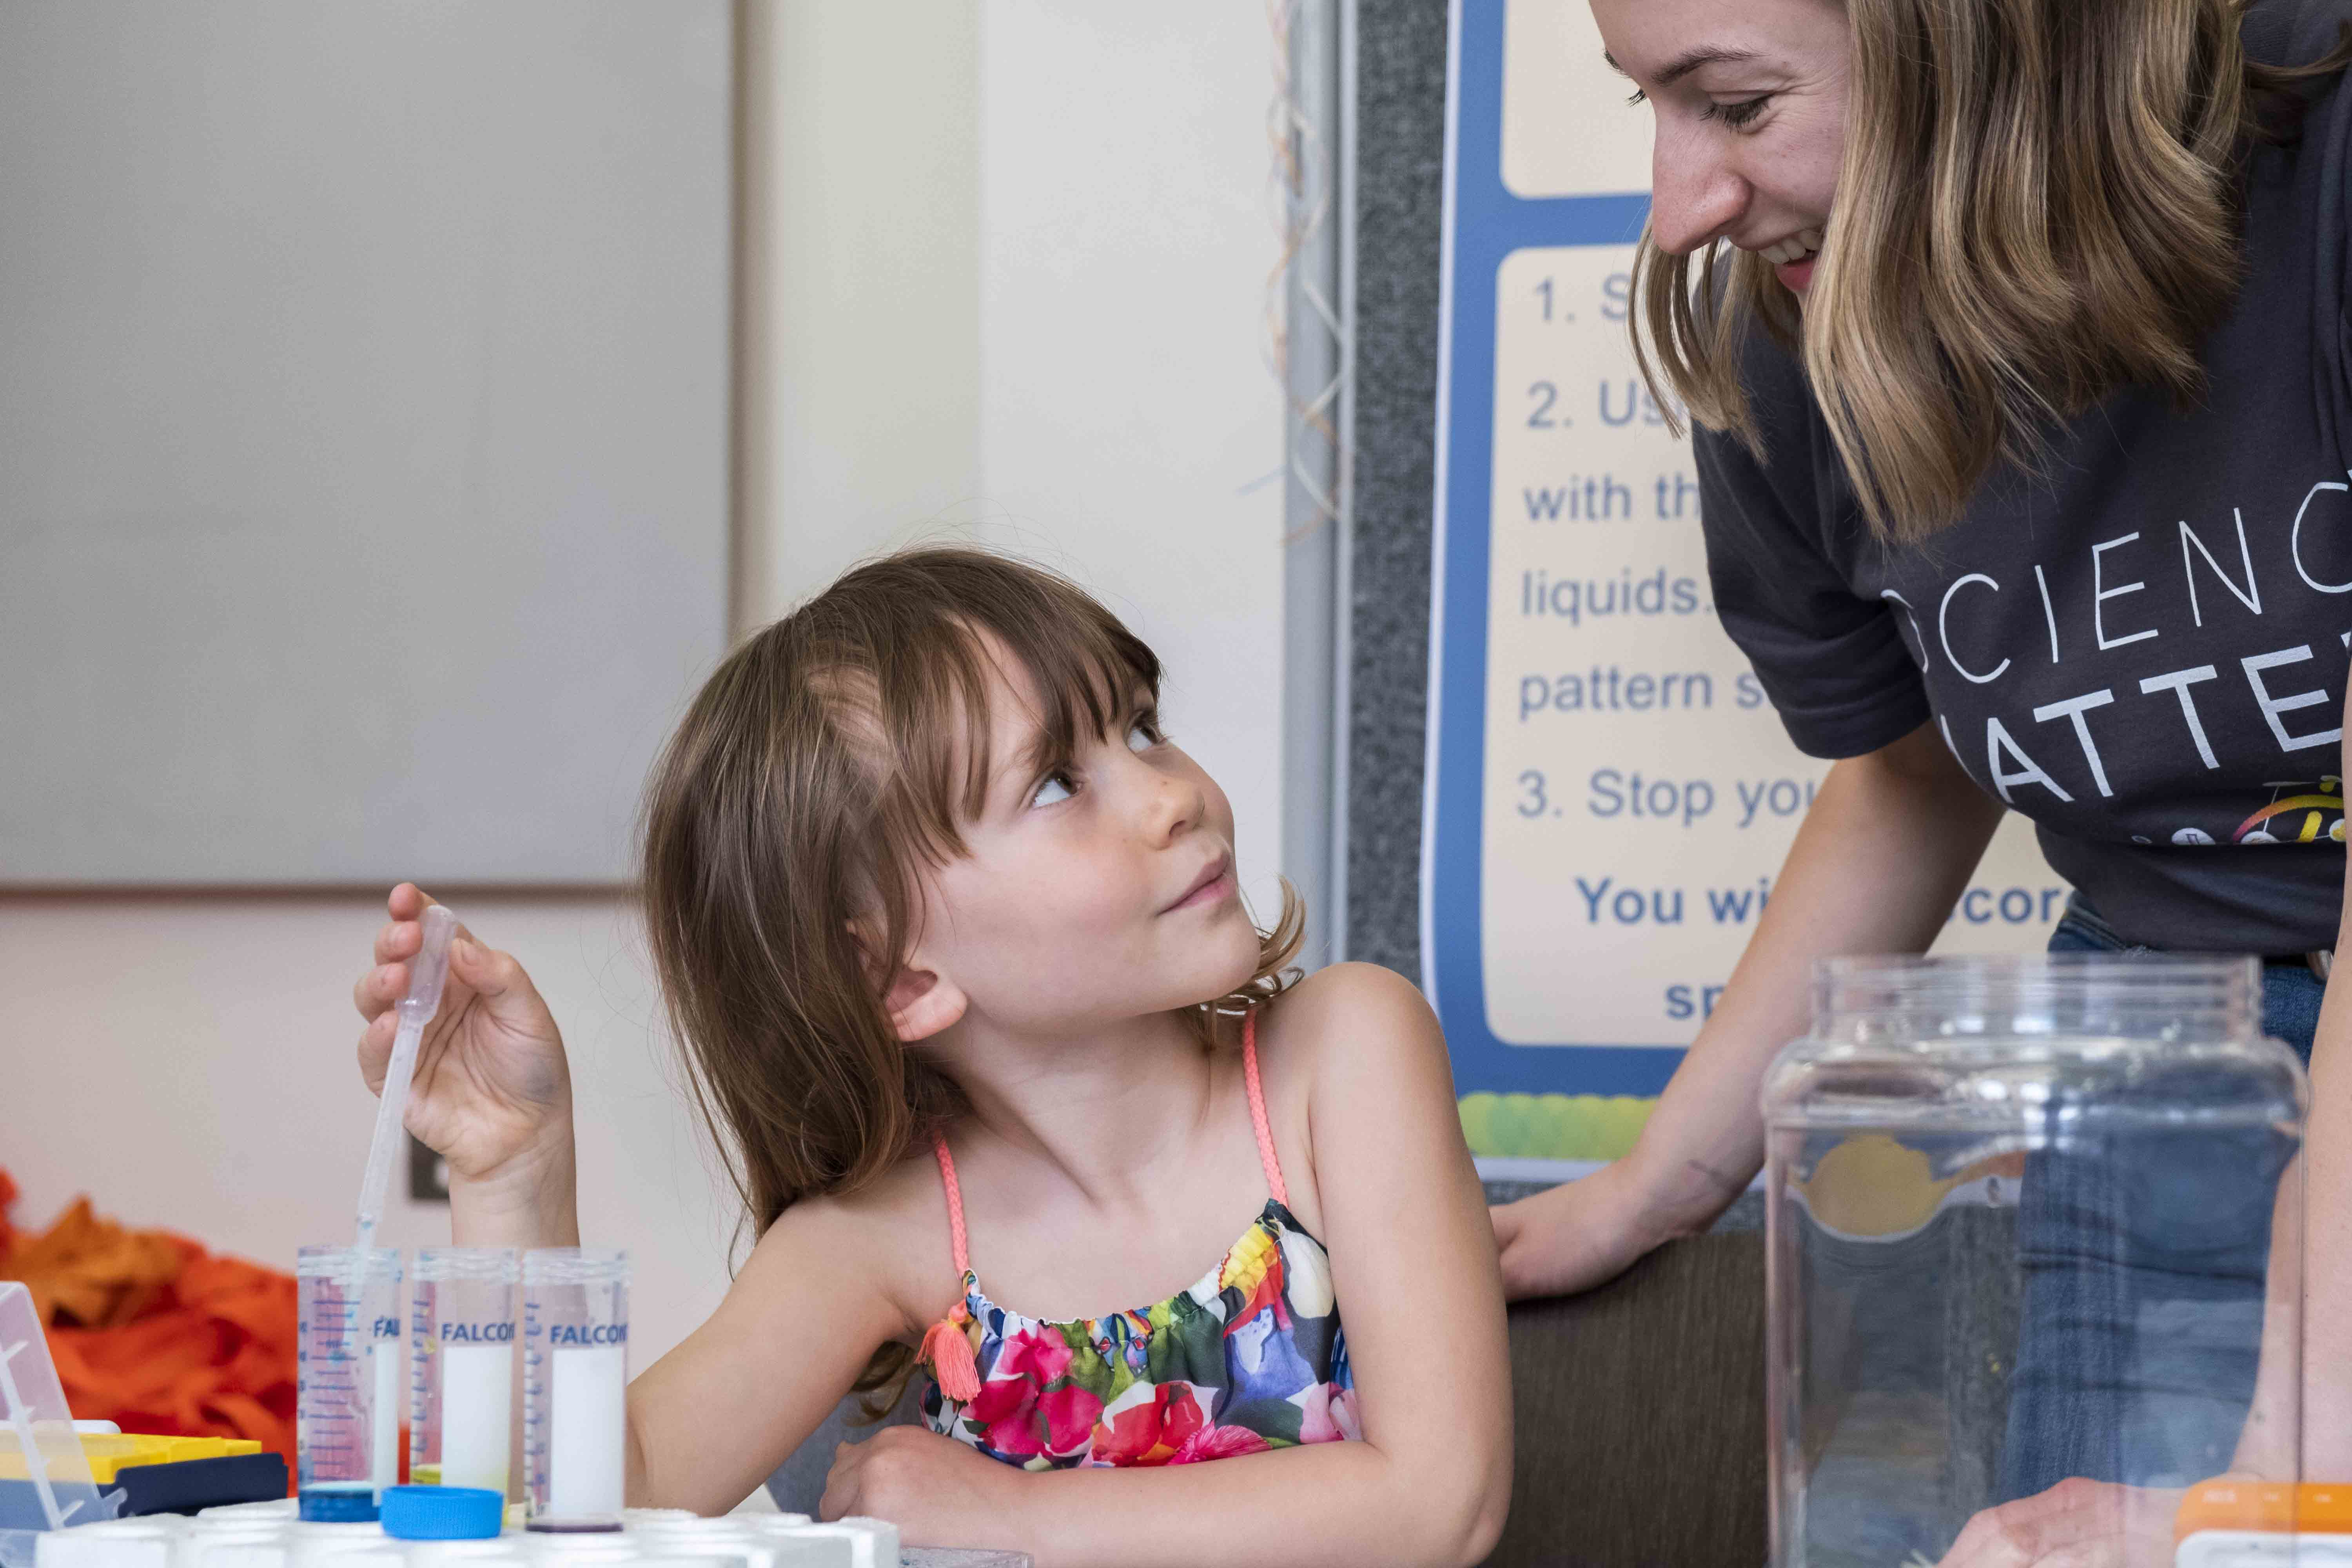 Scientist engaging with young girl at science fair